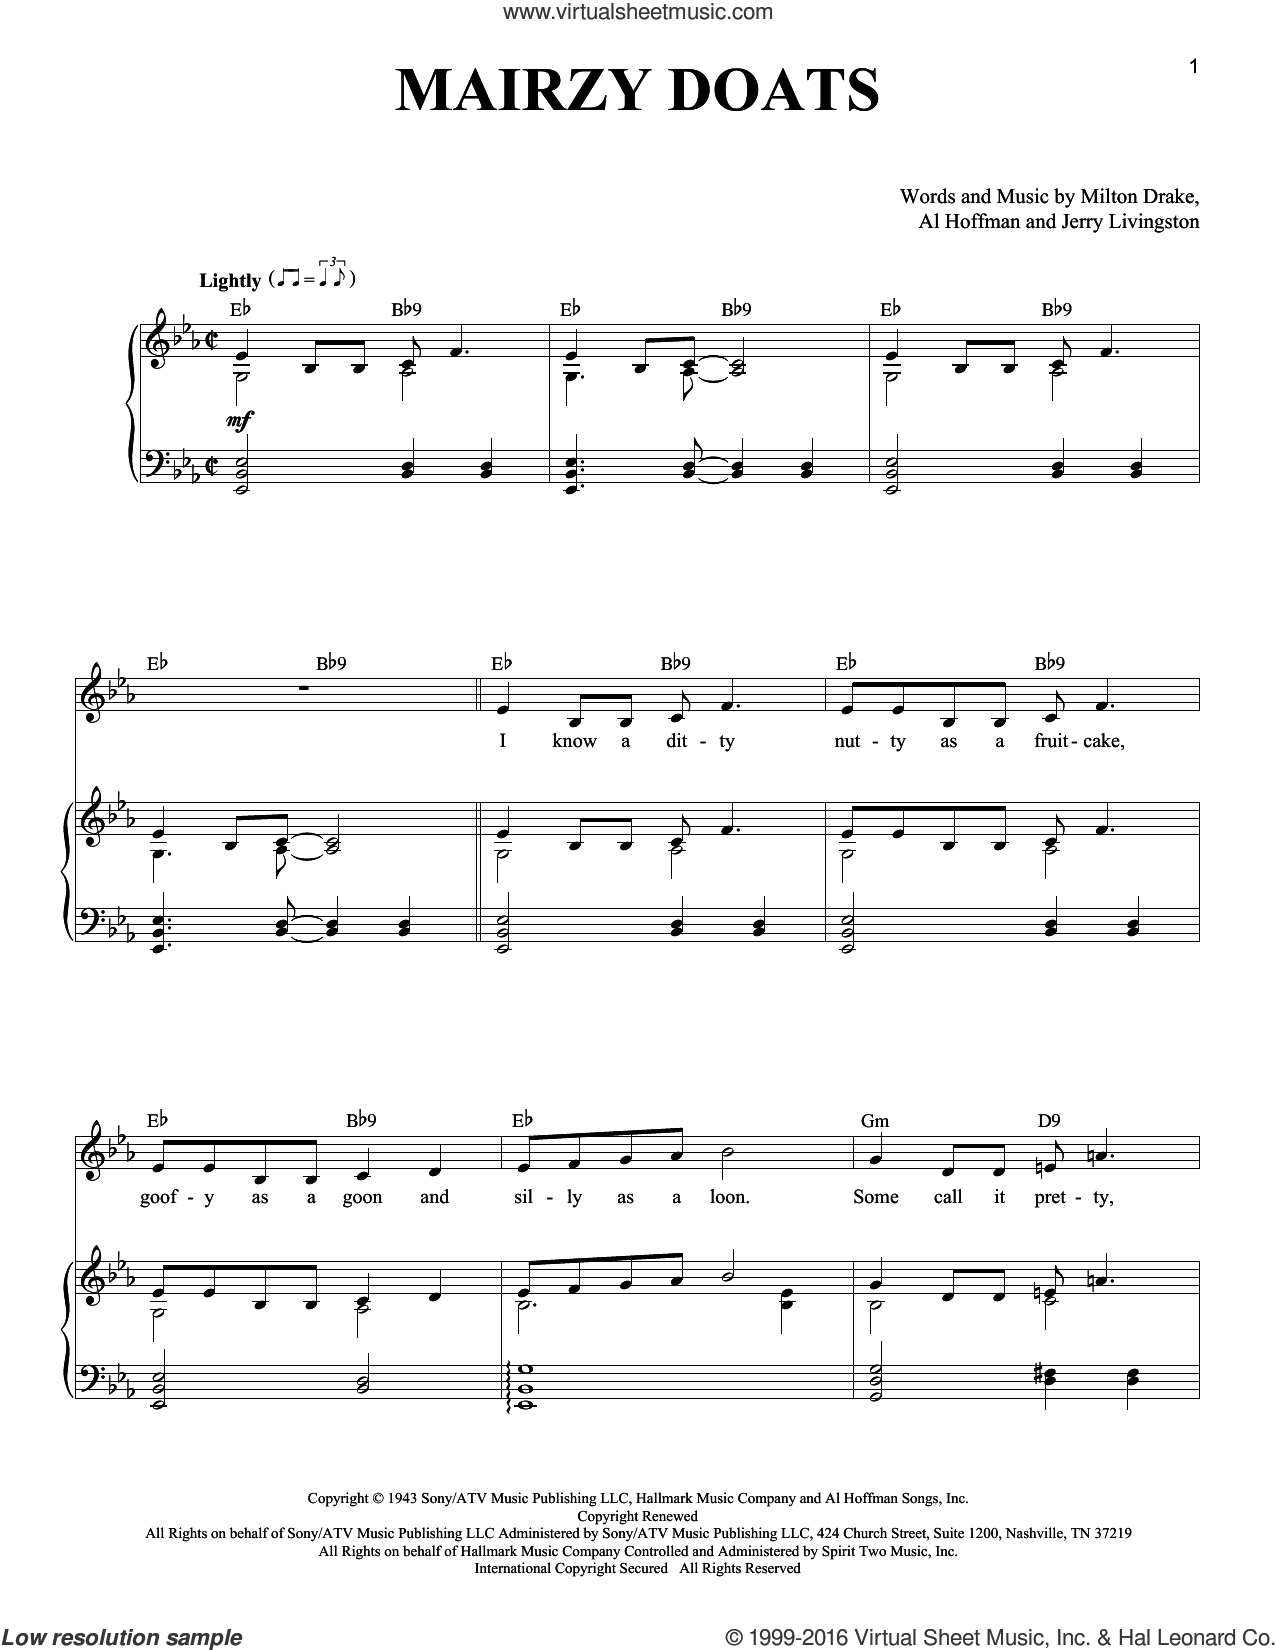 Mairzy Doats sheet music for voice and piano by Milton Drake and Al Hoffman. Score Image Preview.